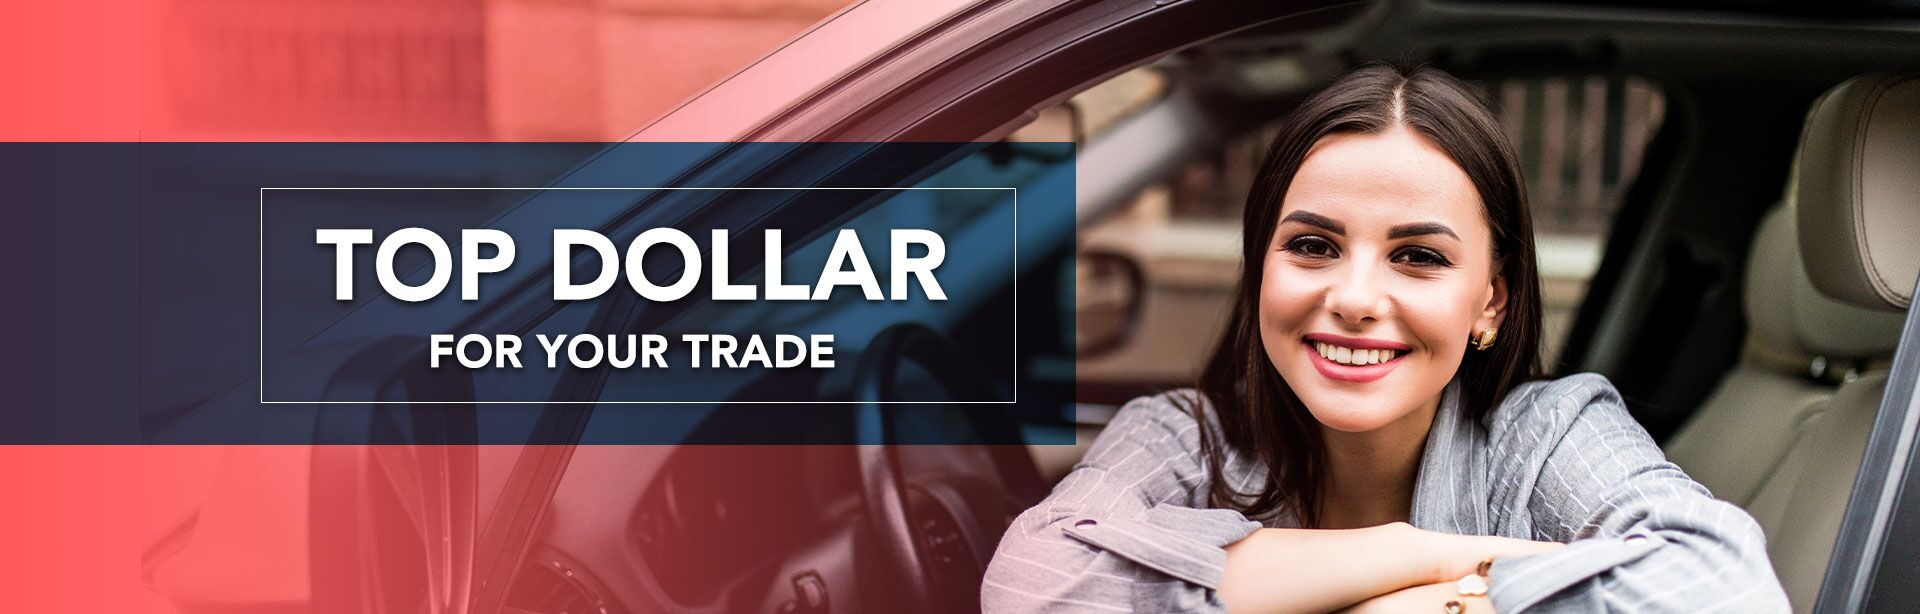 Top Dollar for Your Trade